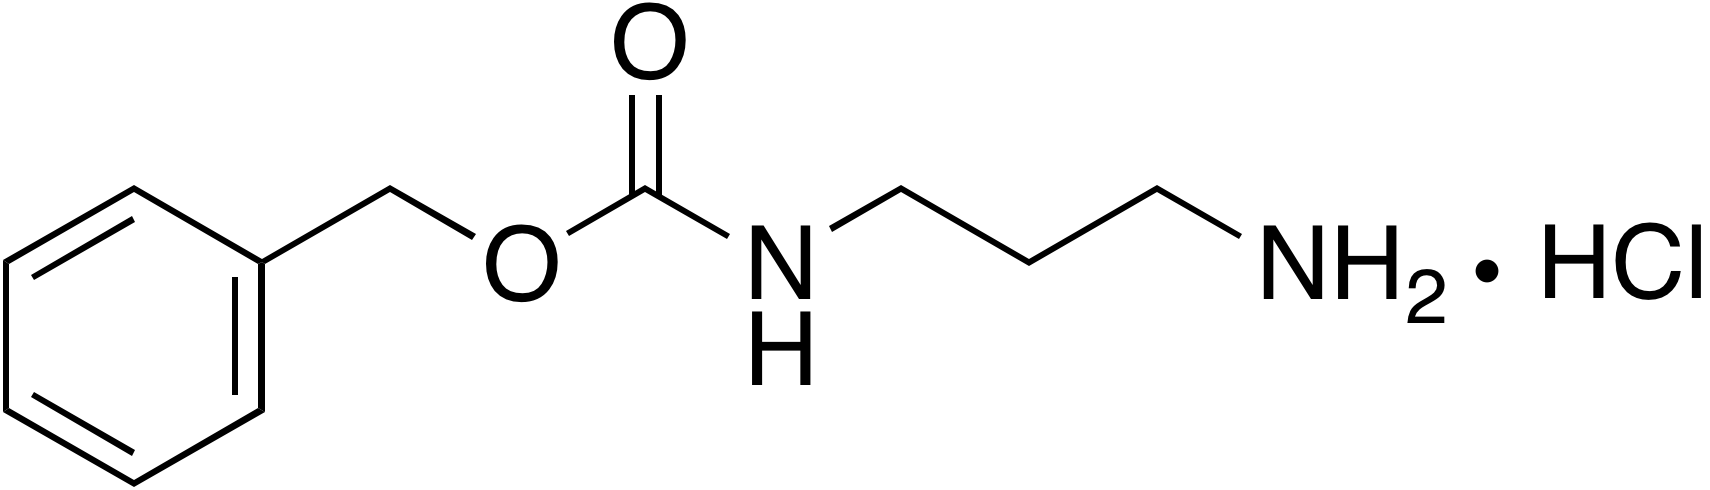 N-Benzyloxycarbonyl-1,3-diaminopropane hydrochloride